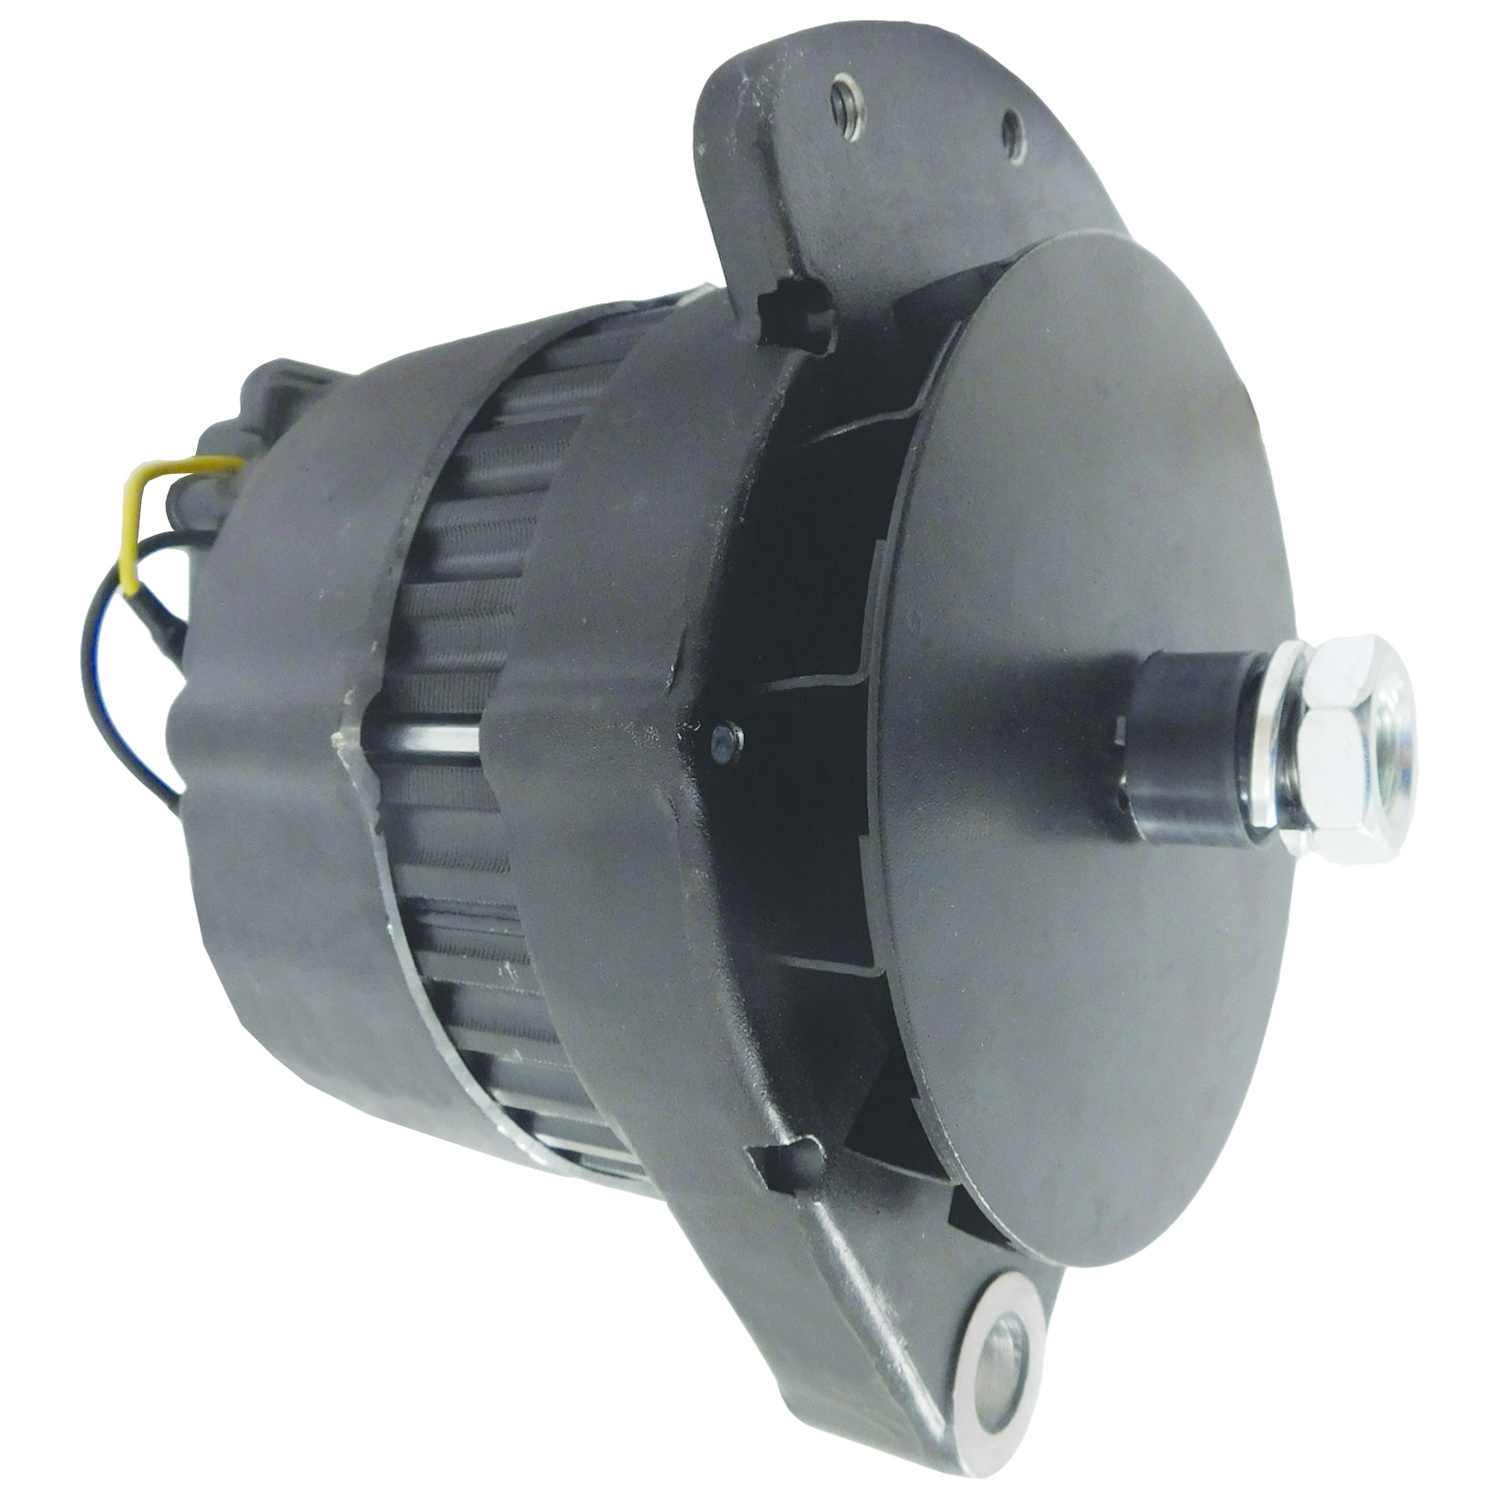 Alternator-Motorola IR/EF 12V 90A